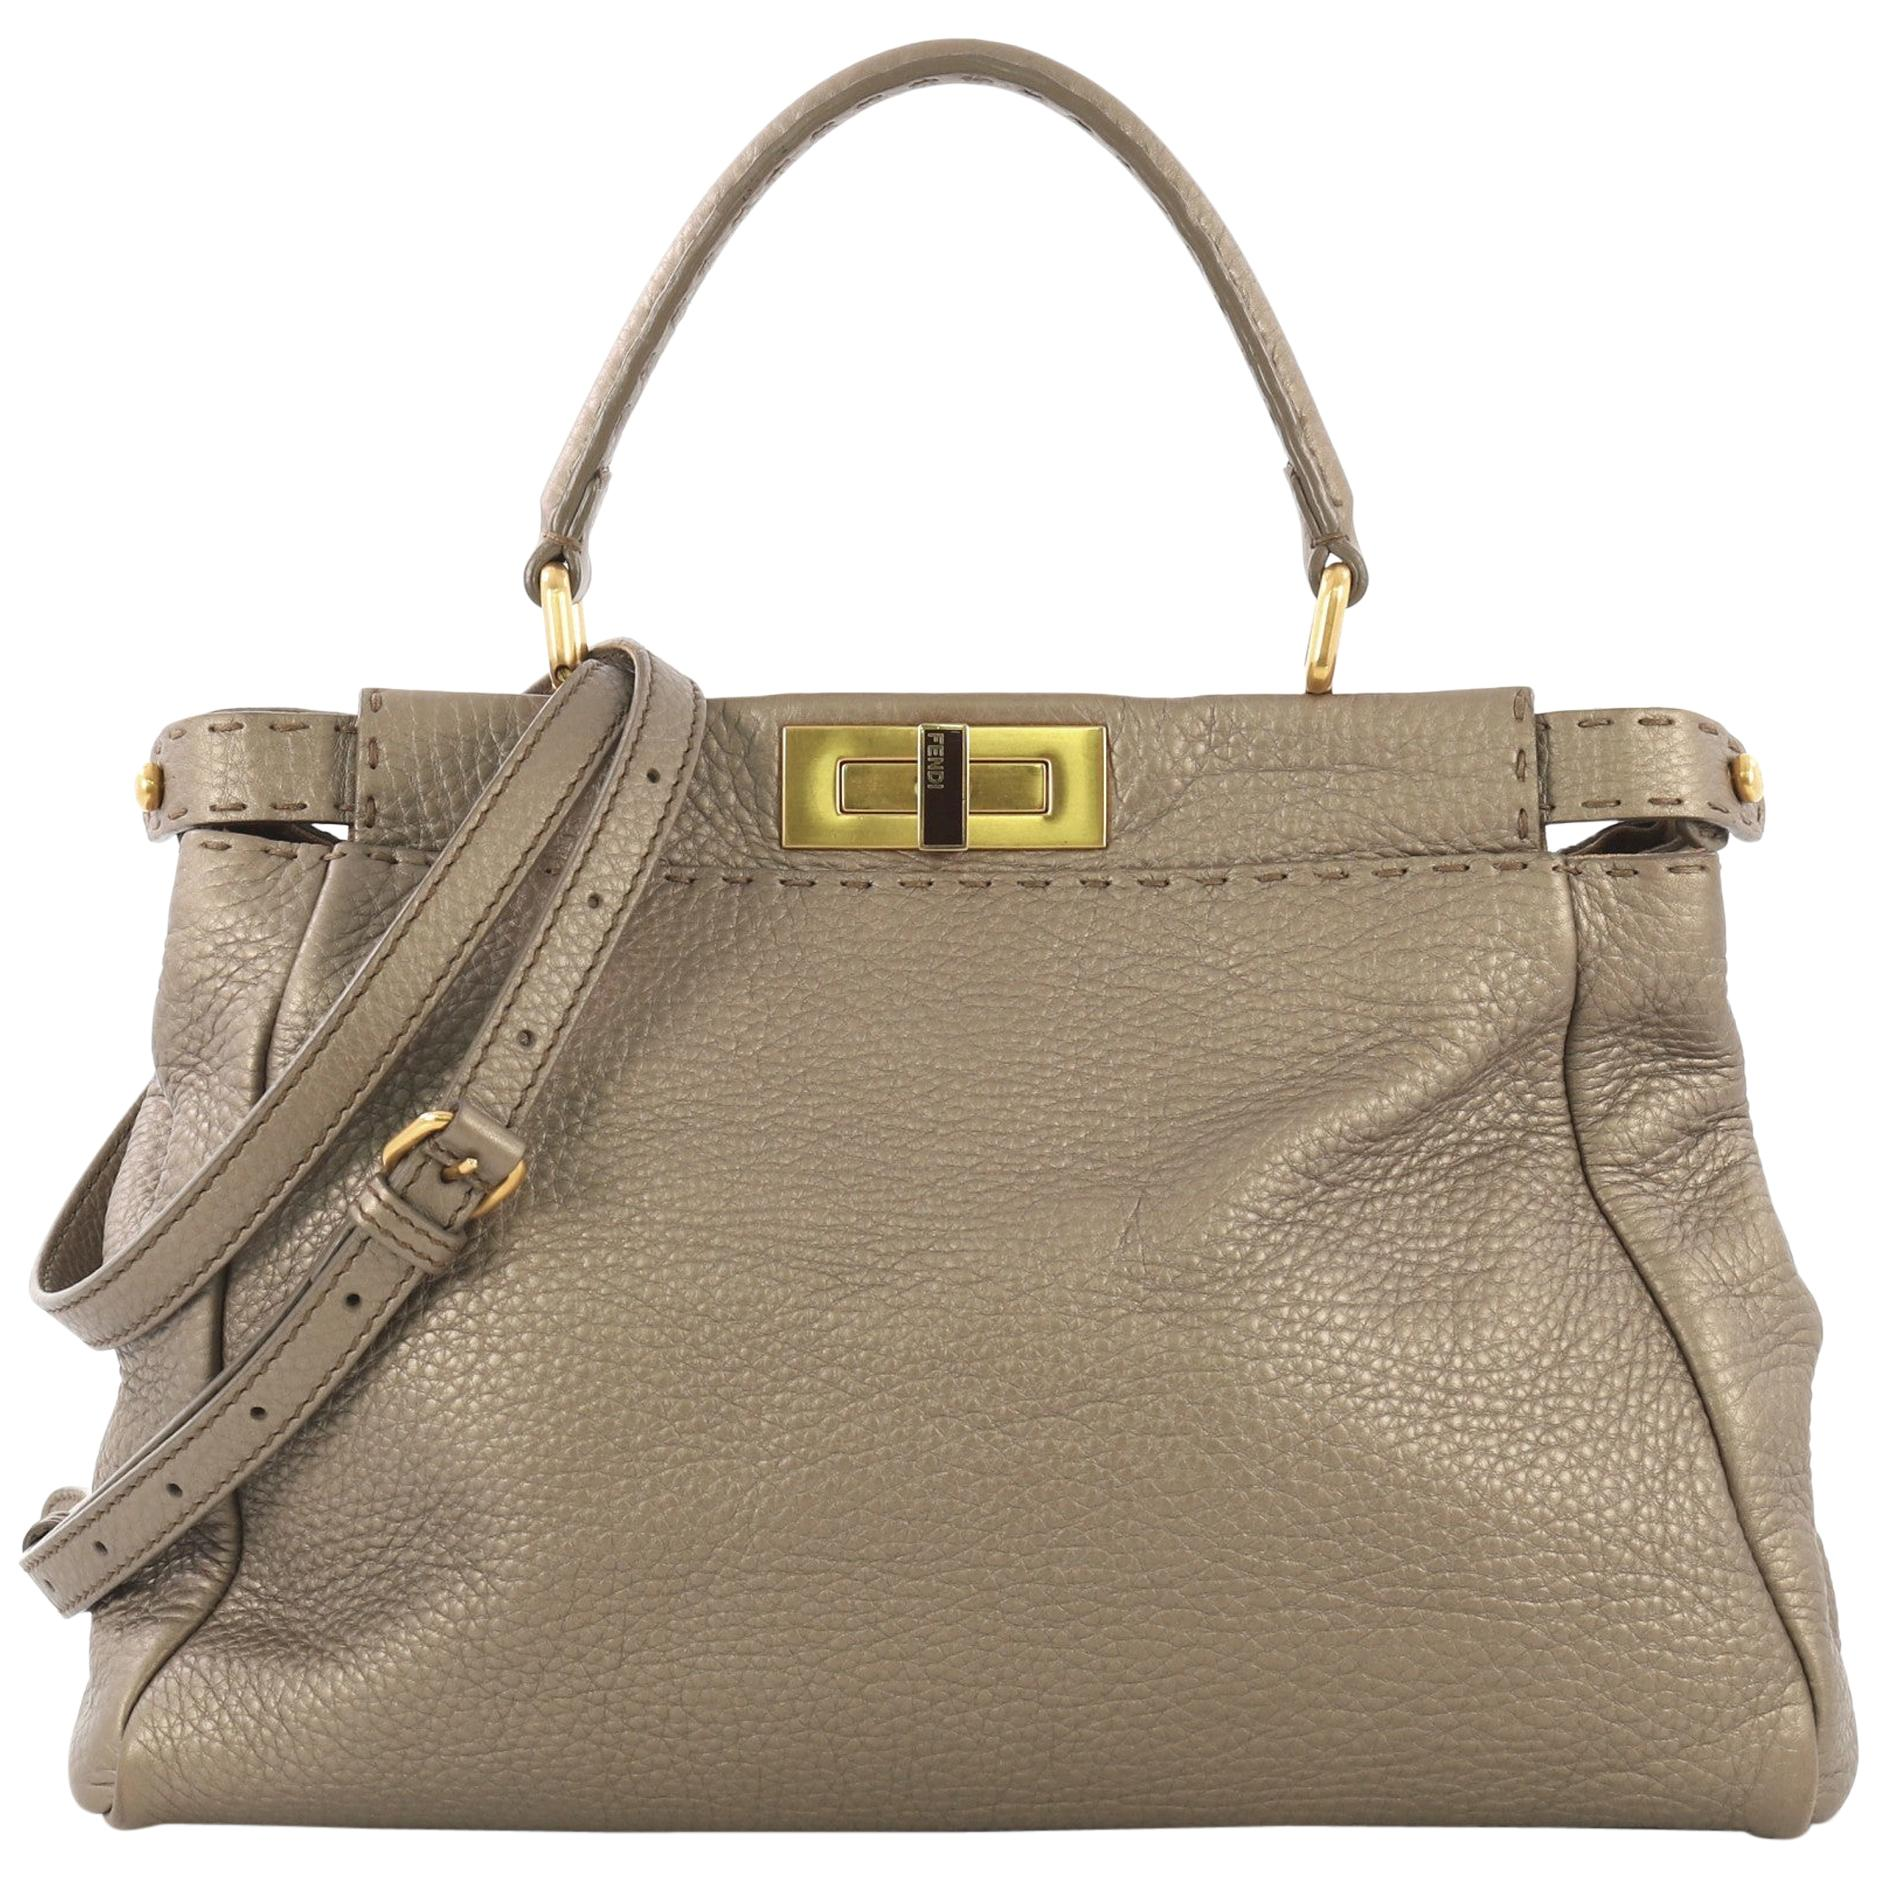 4495ff5ed67 Vintage Fendi Handbags and Purses - 1,065 For Sale at 1stdibs